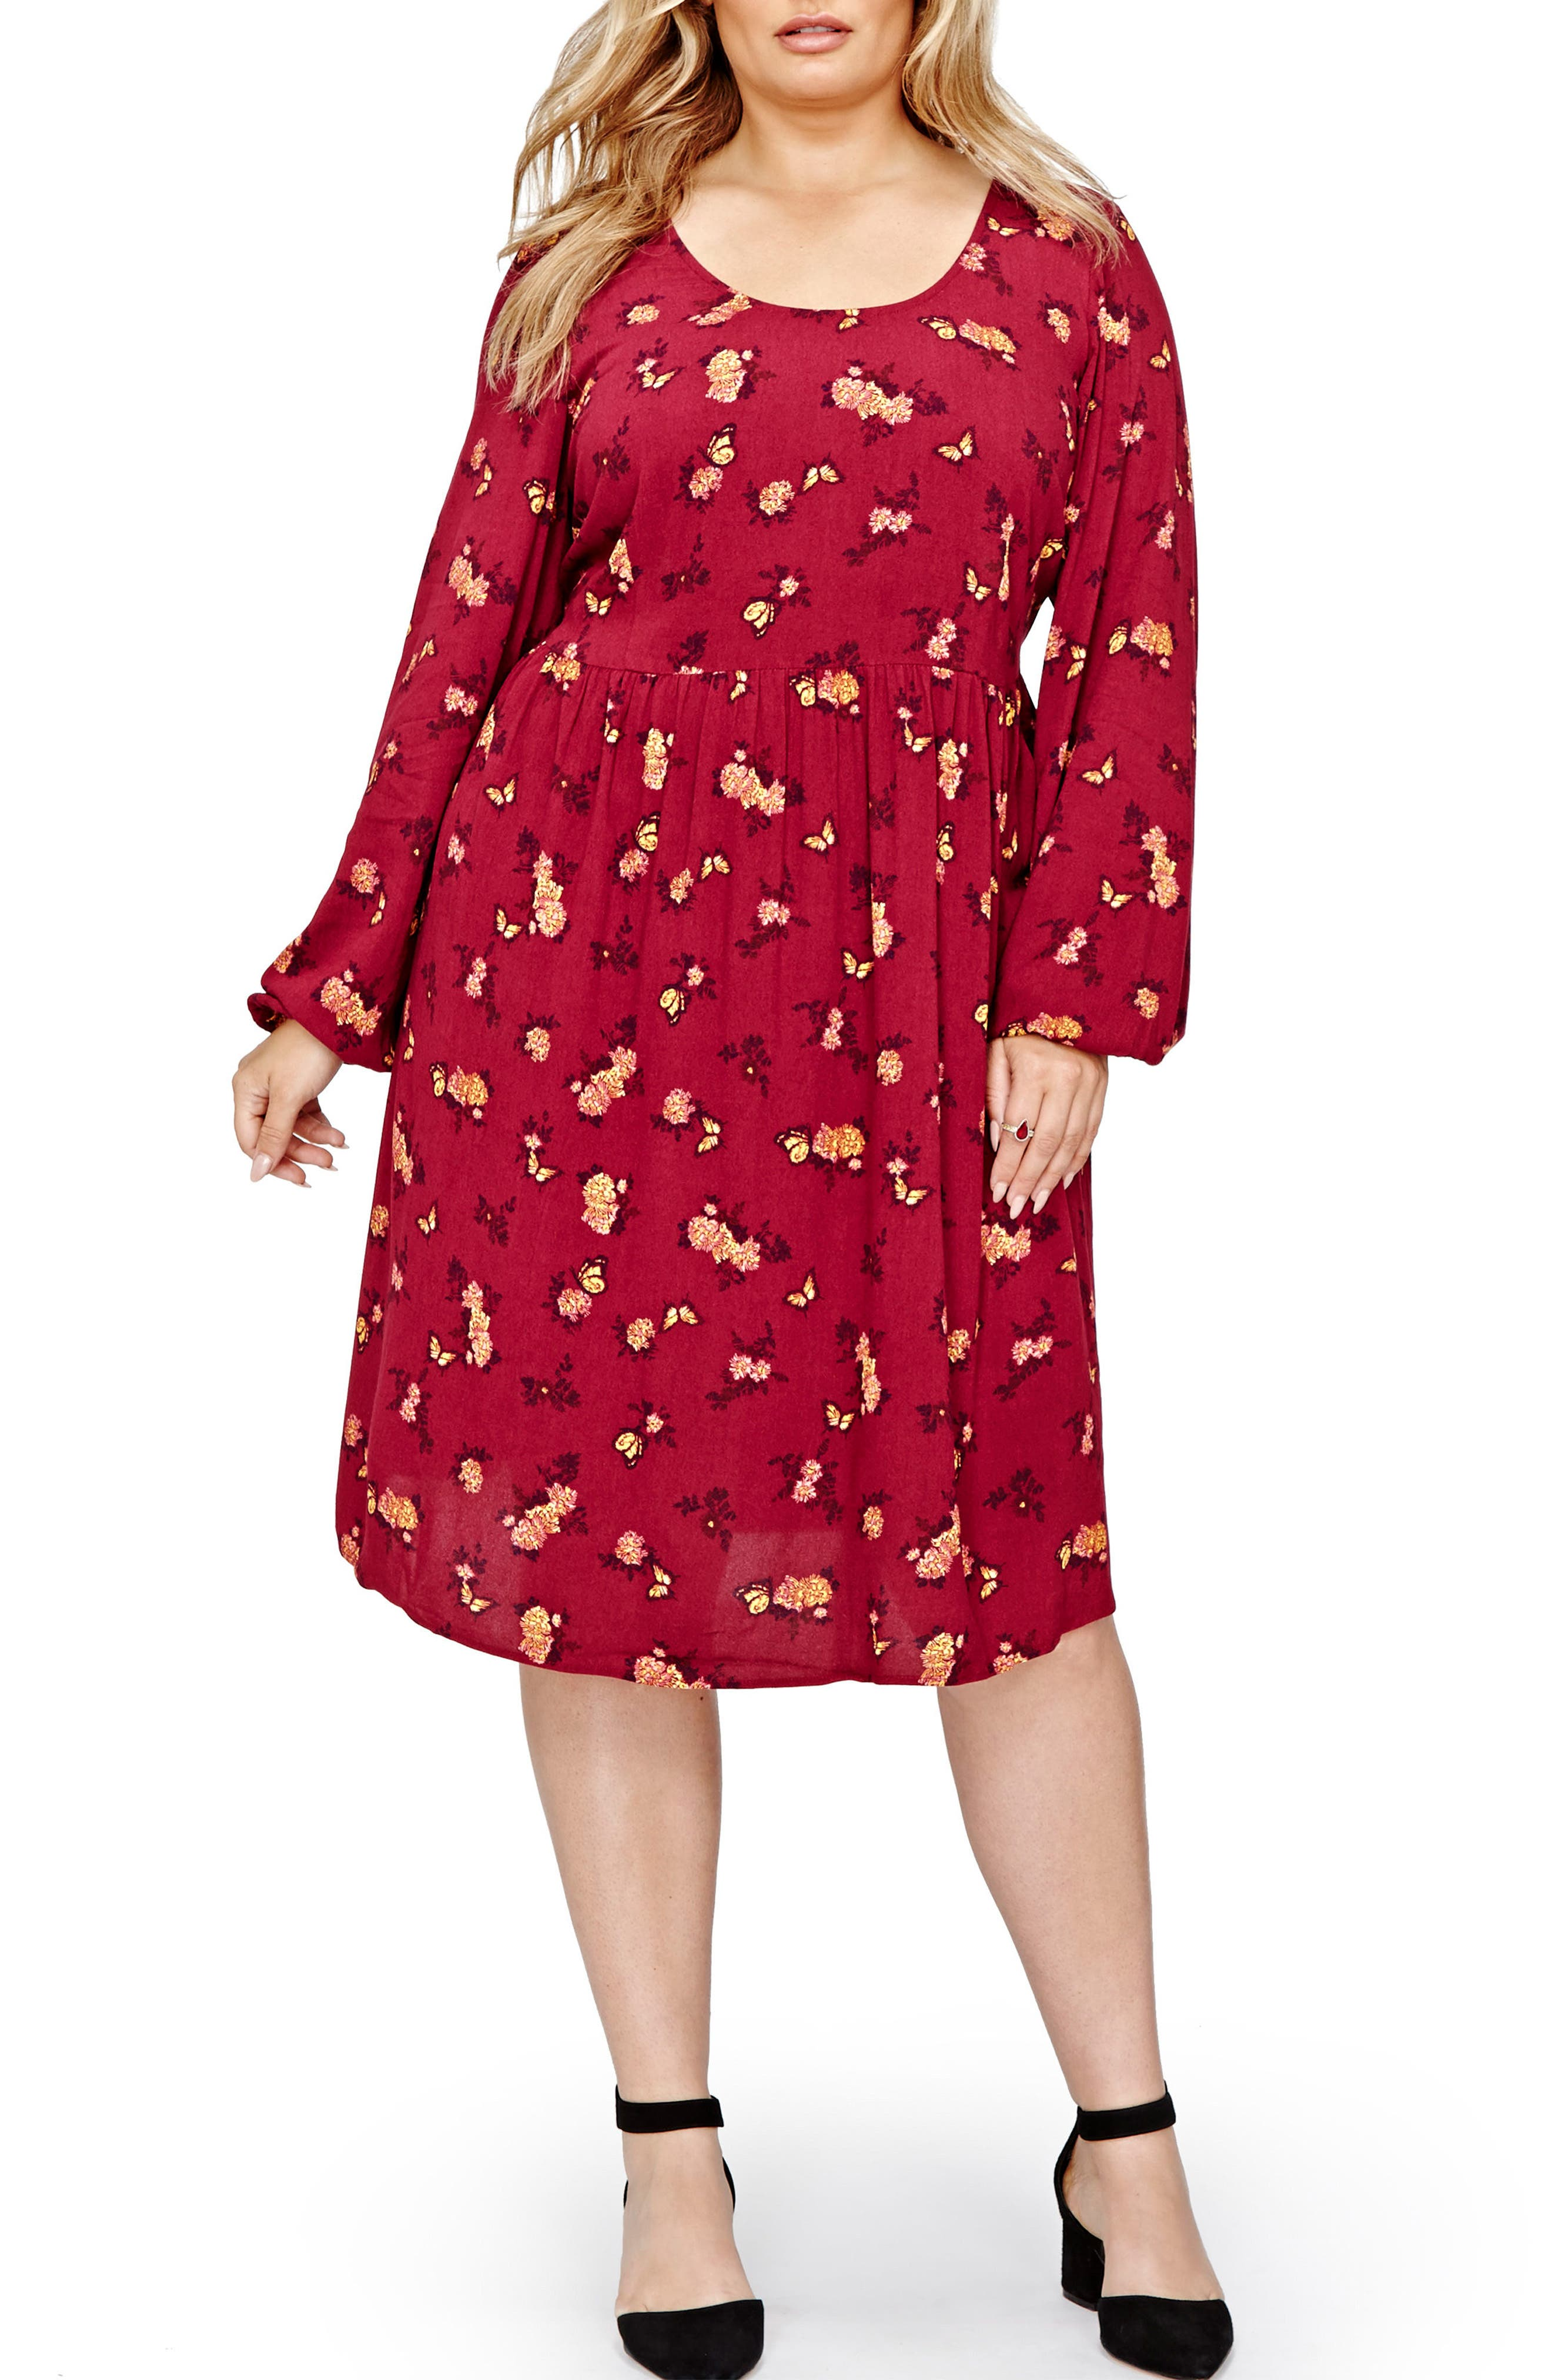 Main Image - ADDITION ELLE LOVE AND LEGEND Floral Swing Dress (Plus Size)